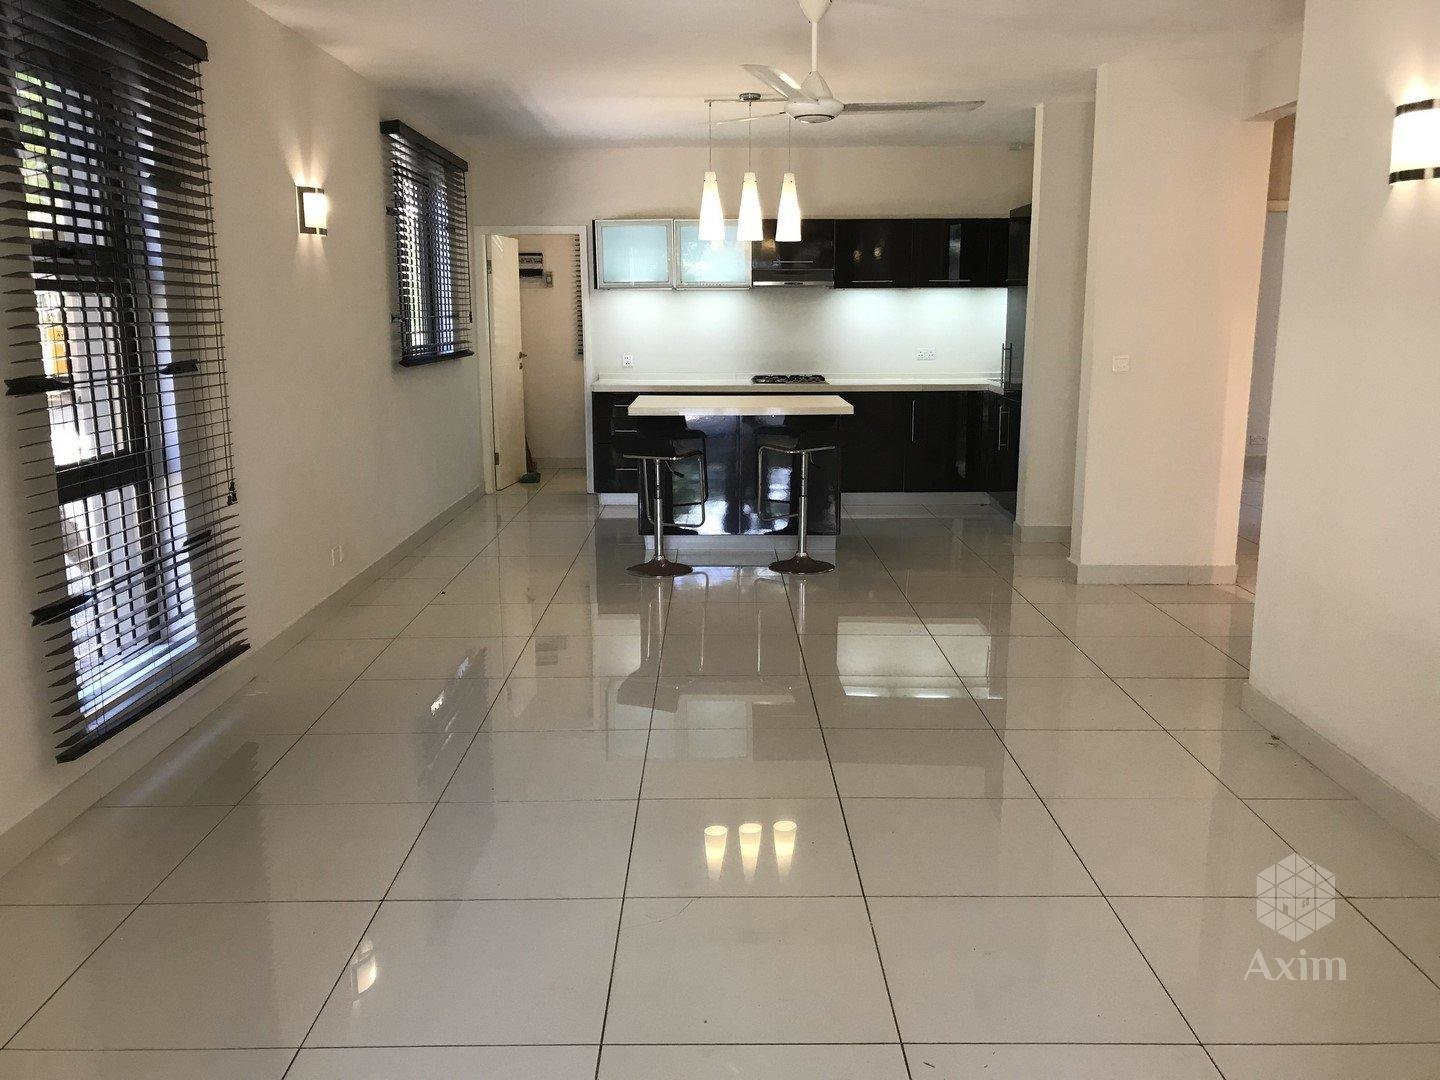 TAMARIN - 3 bedroom apartment close to the beach, shops and restaurants